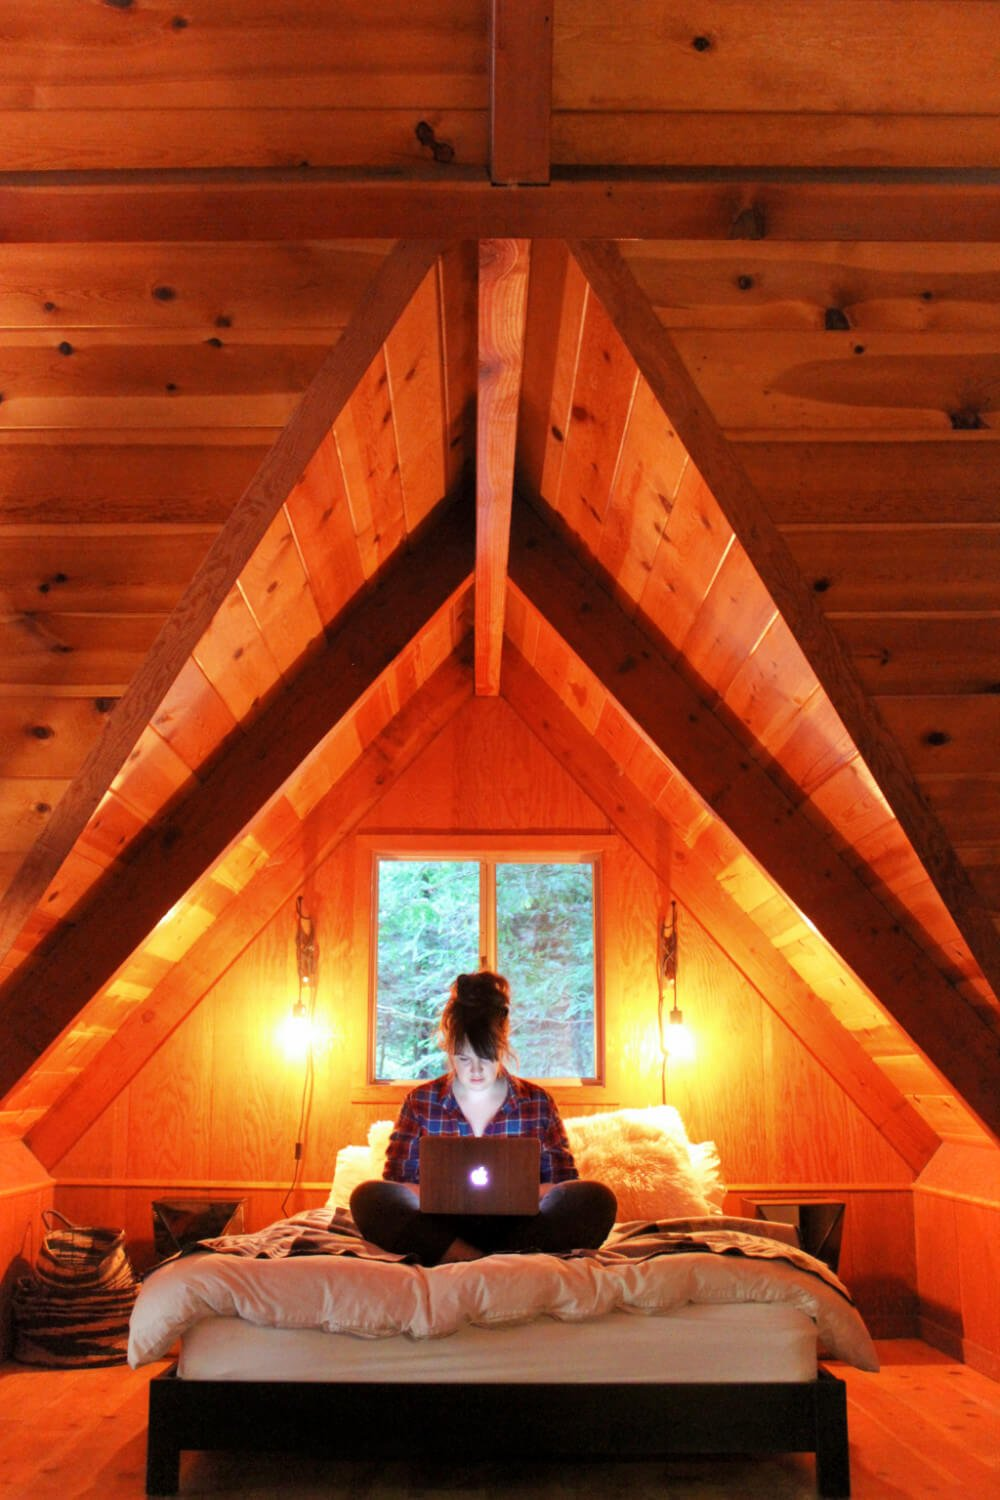 Working on the bed in our gorgeous cabin in Guerneville.